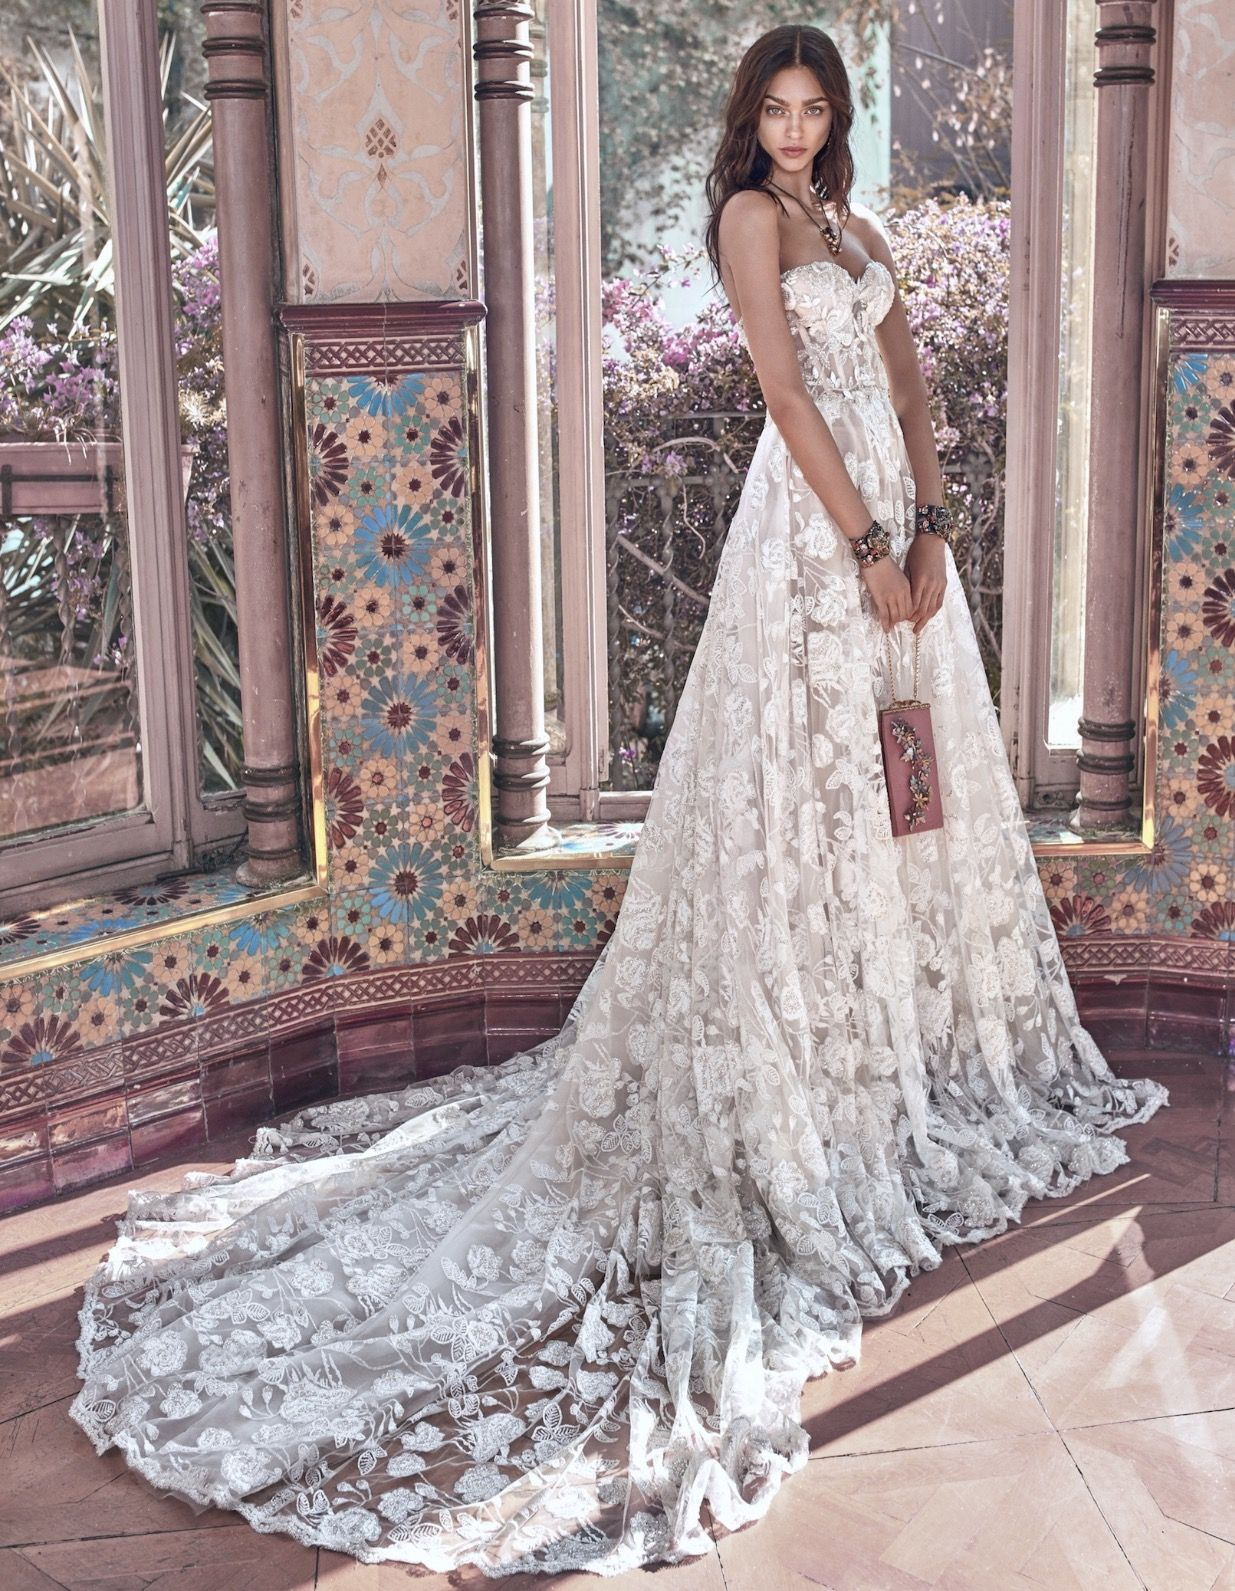 Wedding dress consignment shops near me  Pin by Victoria Barber on Wedding  Pinterest  Wedding